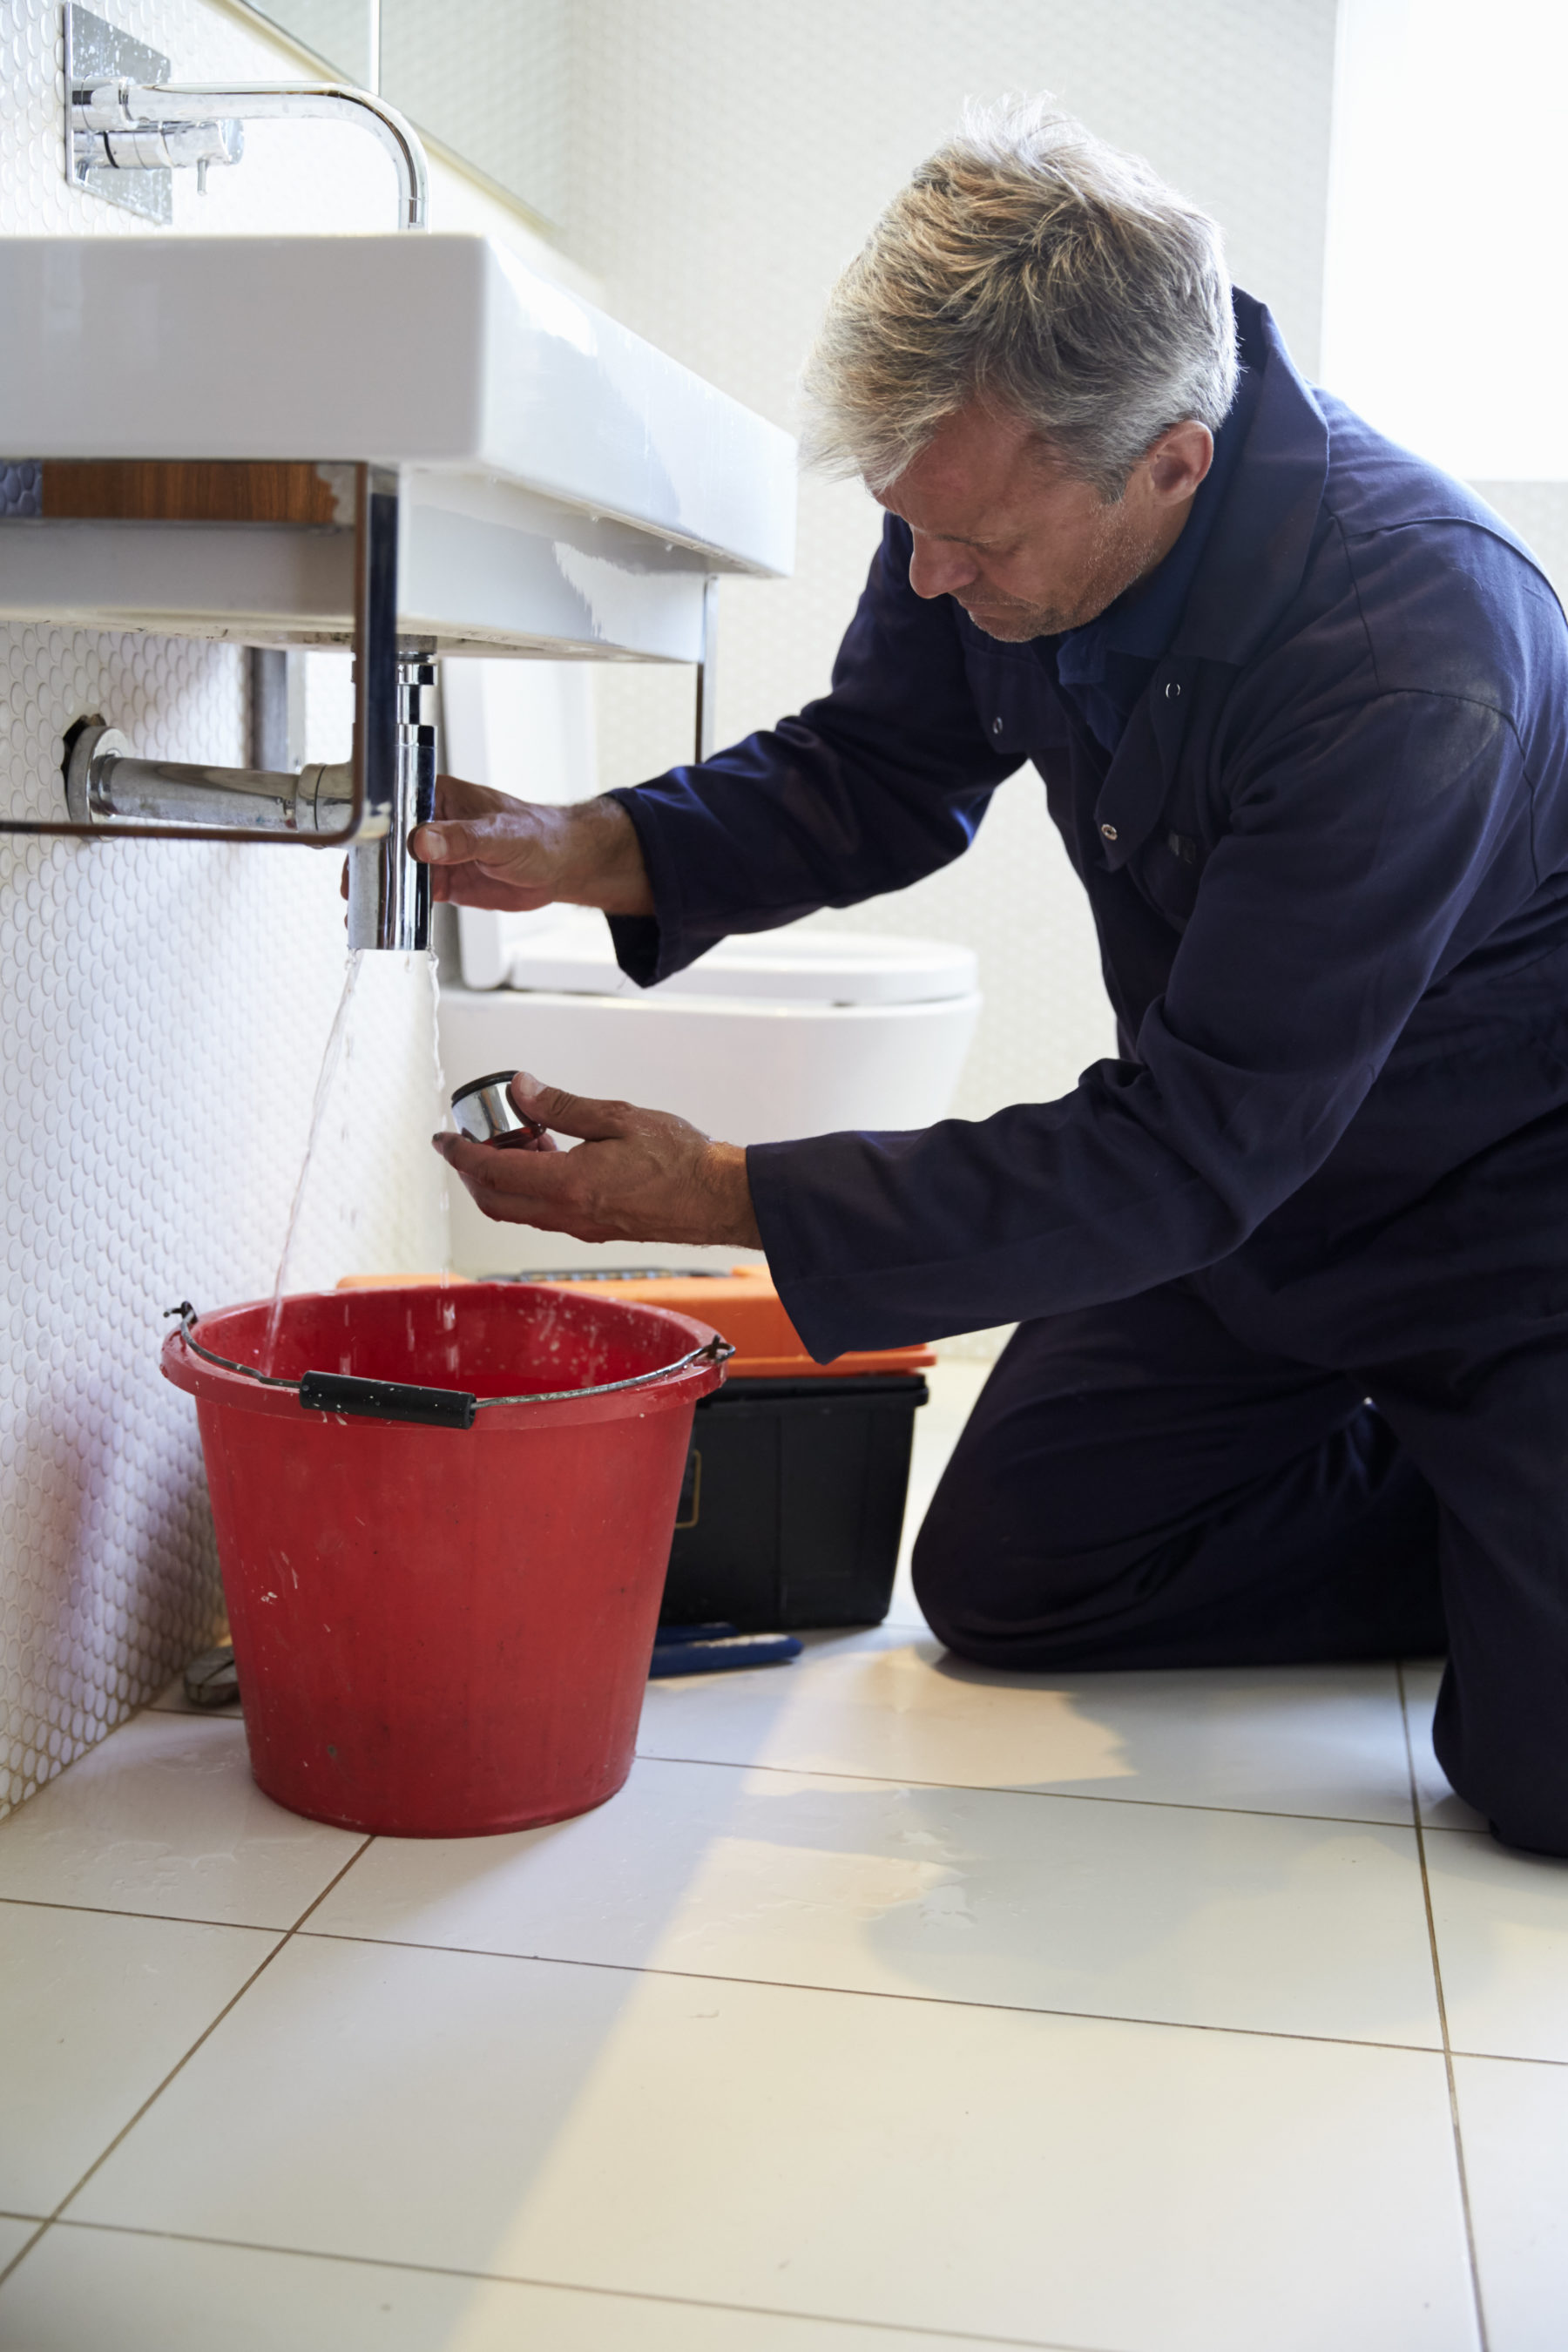 Plumber Working On Sink In Bathroom